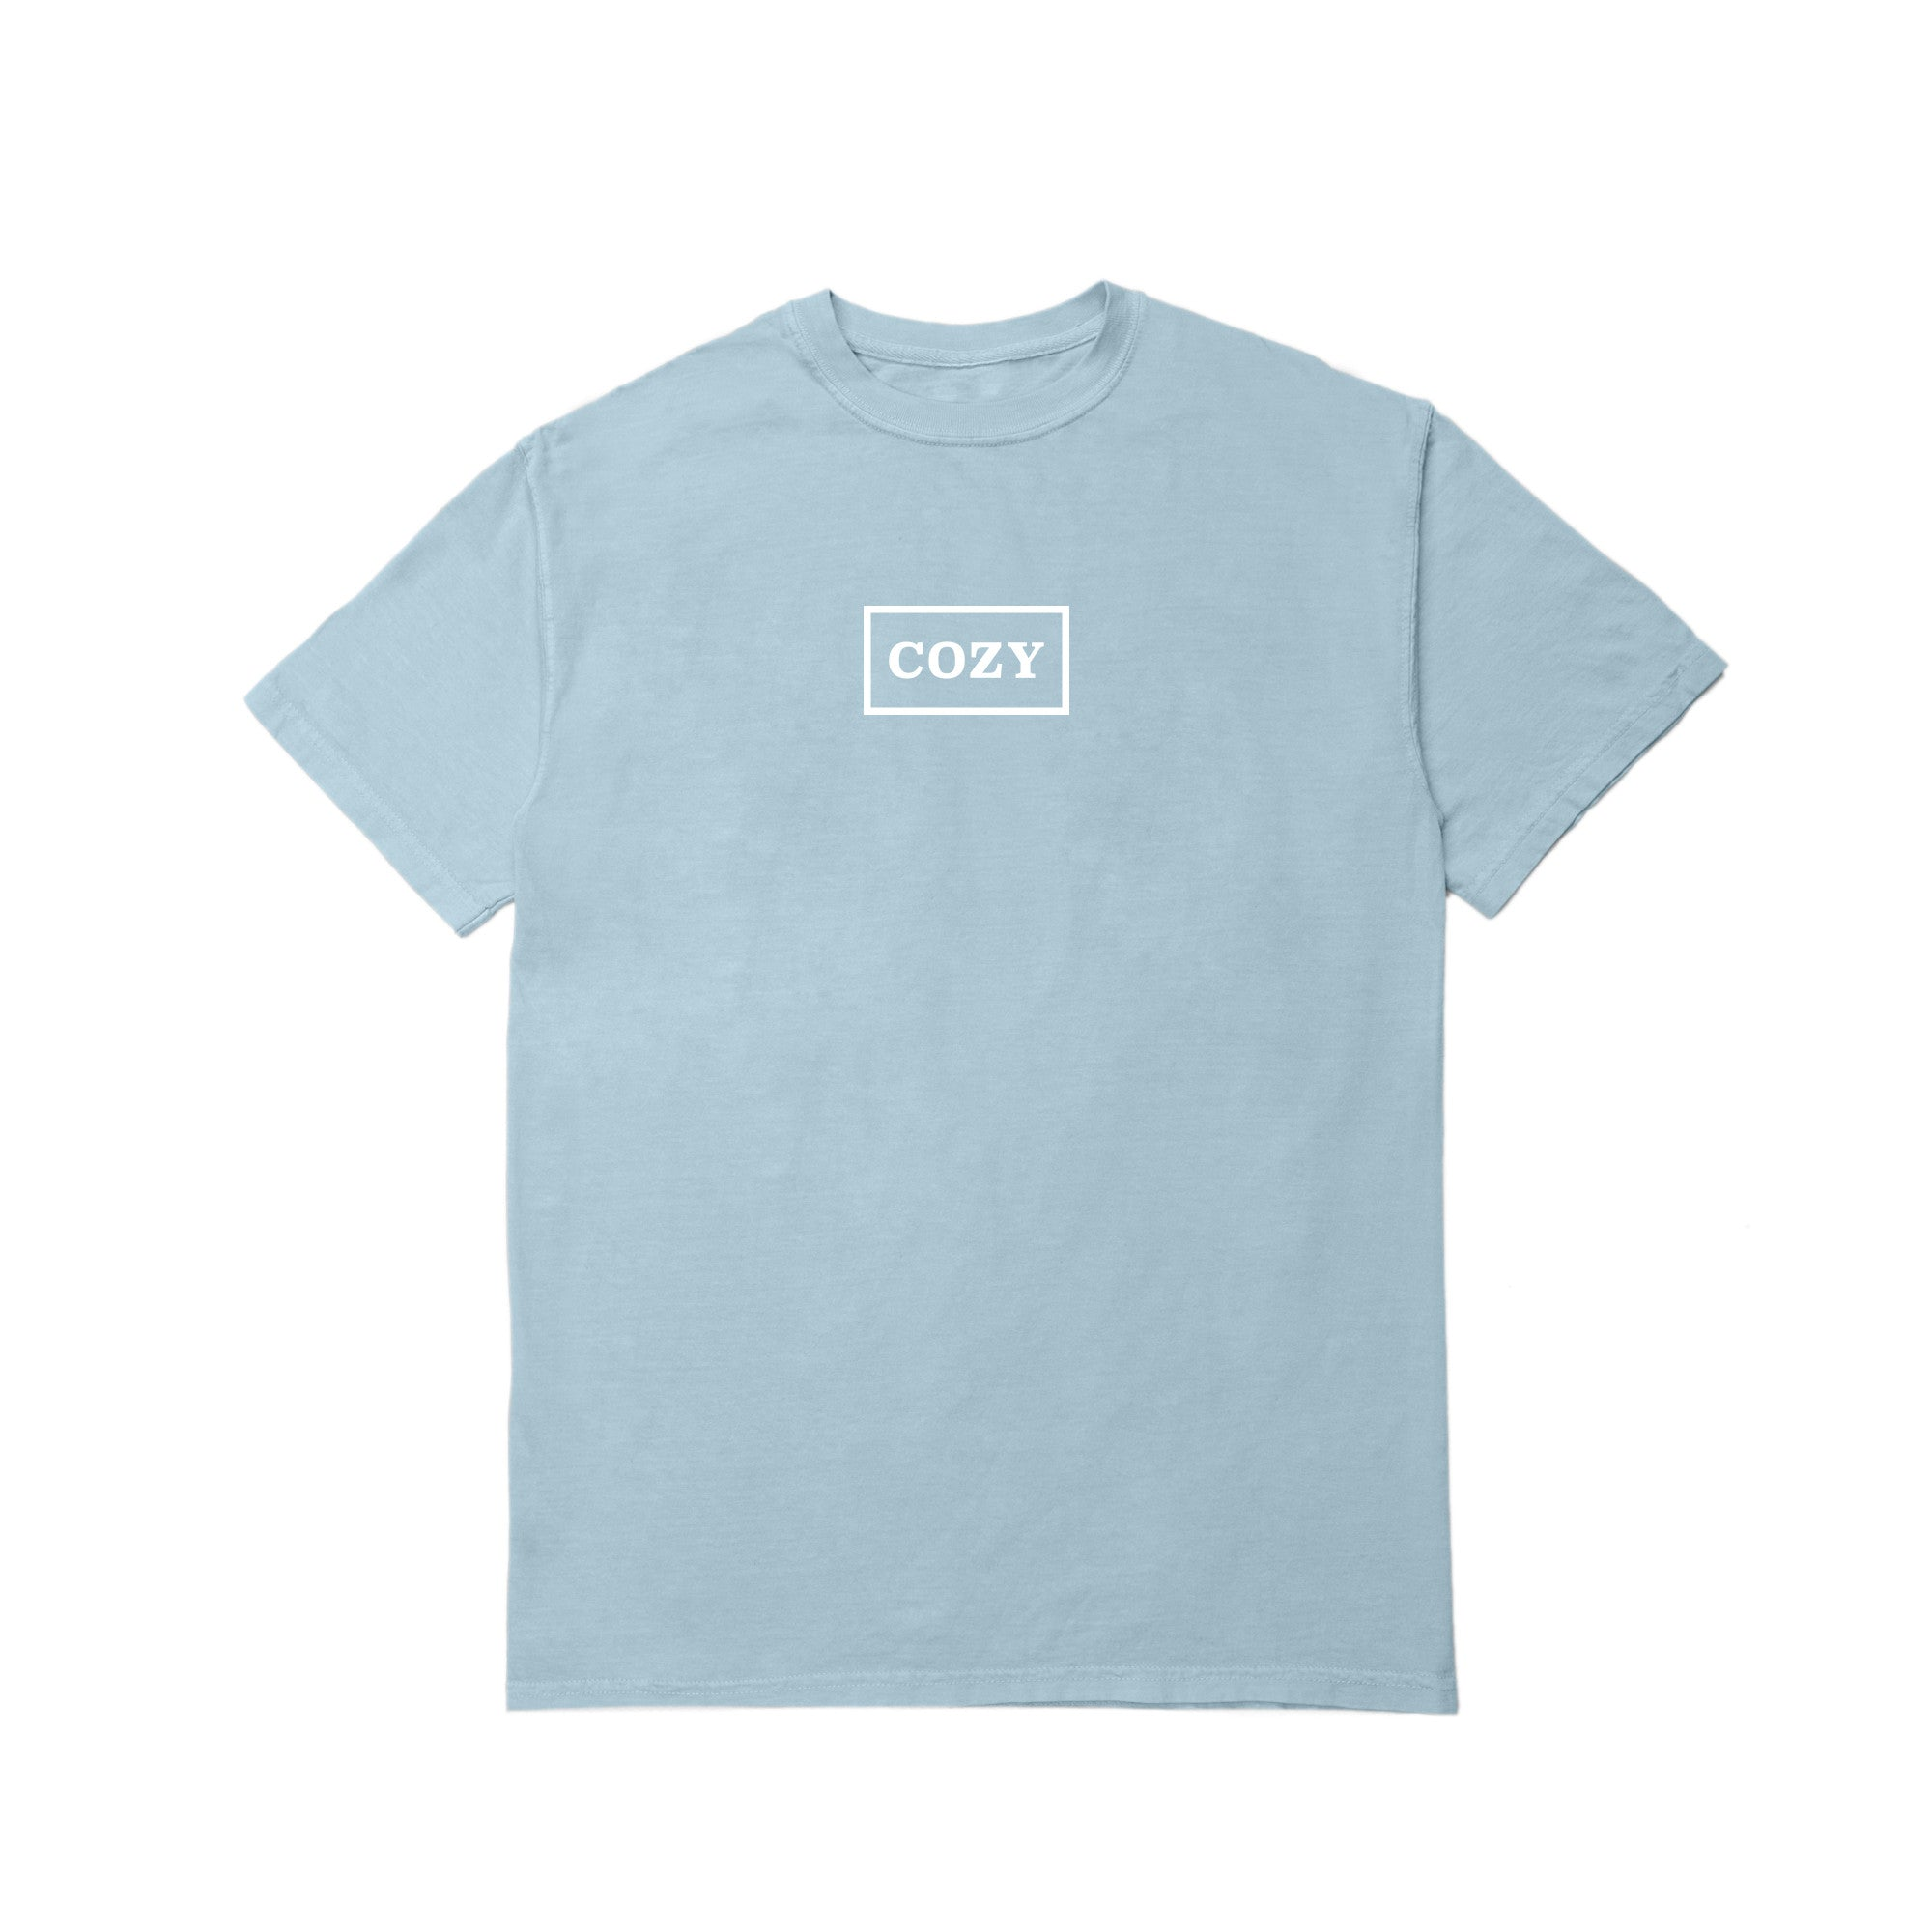 Standard Box Tee - Powder Blue